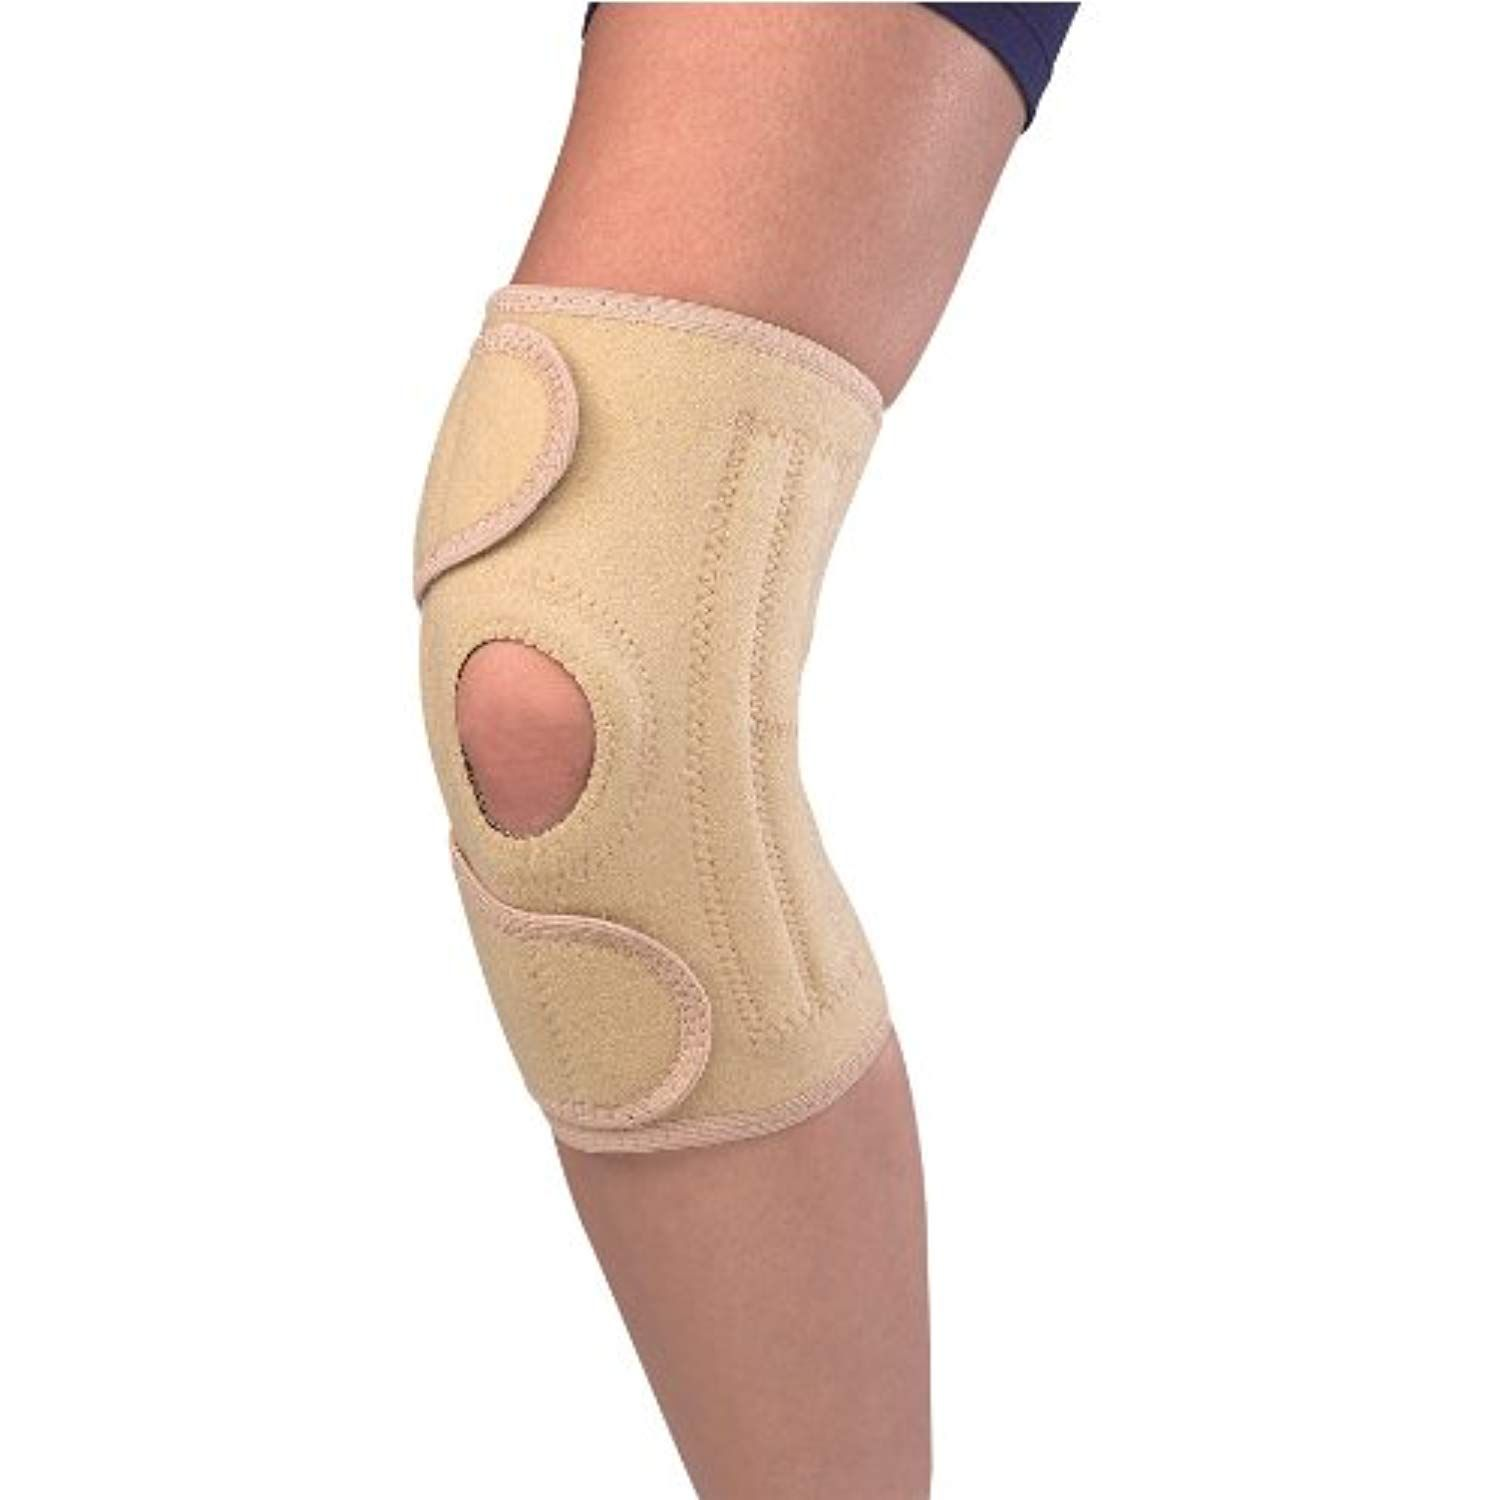 5e819cf66d Mueller Sports Medicine Open Patella Knee Stabilizer, Beige, One Size Fits  Most *** Read more reviews of the product by visiting the link on the image.